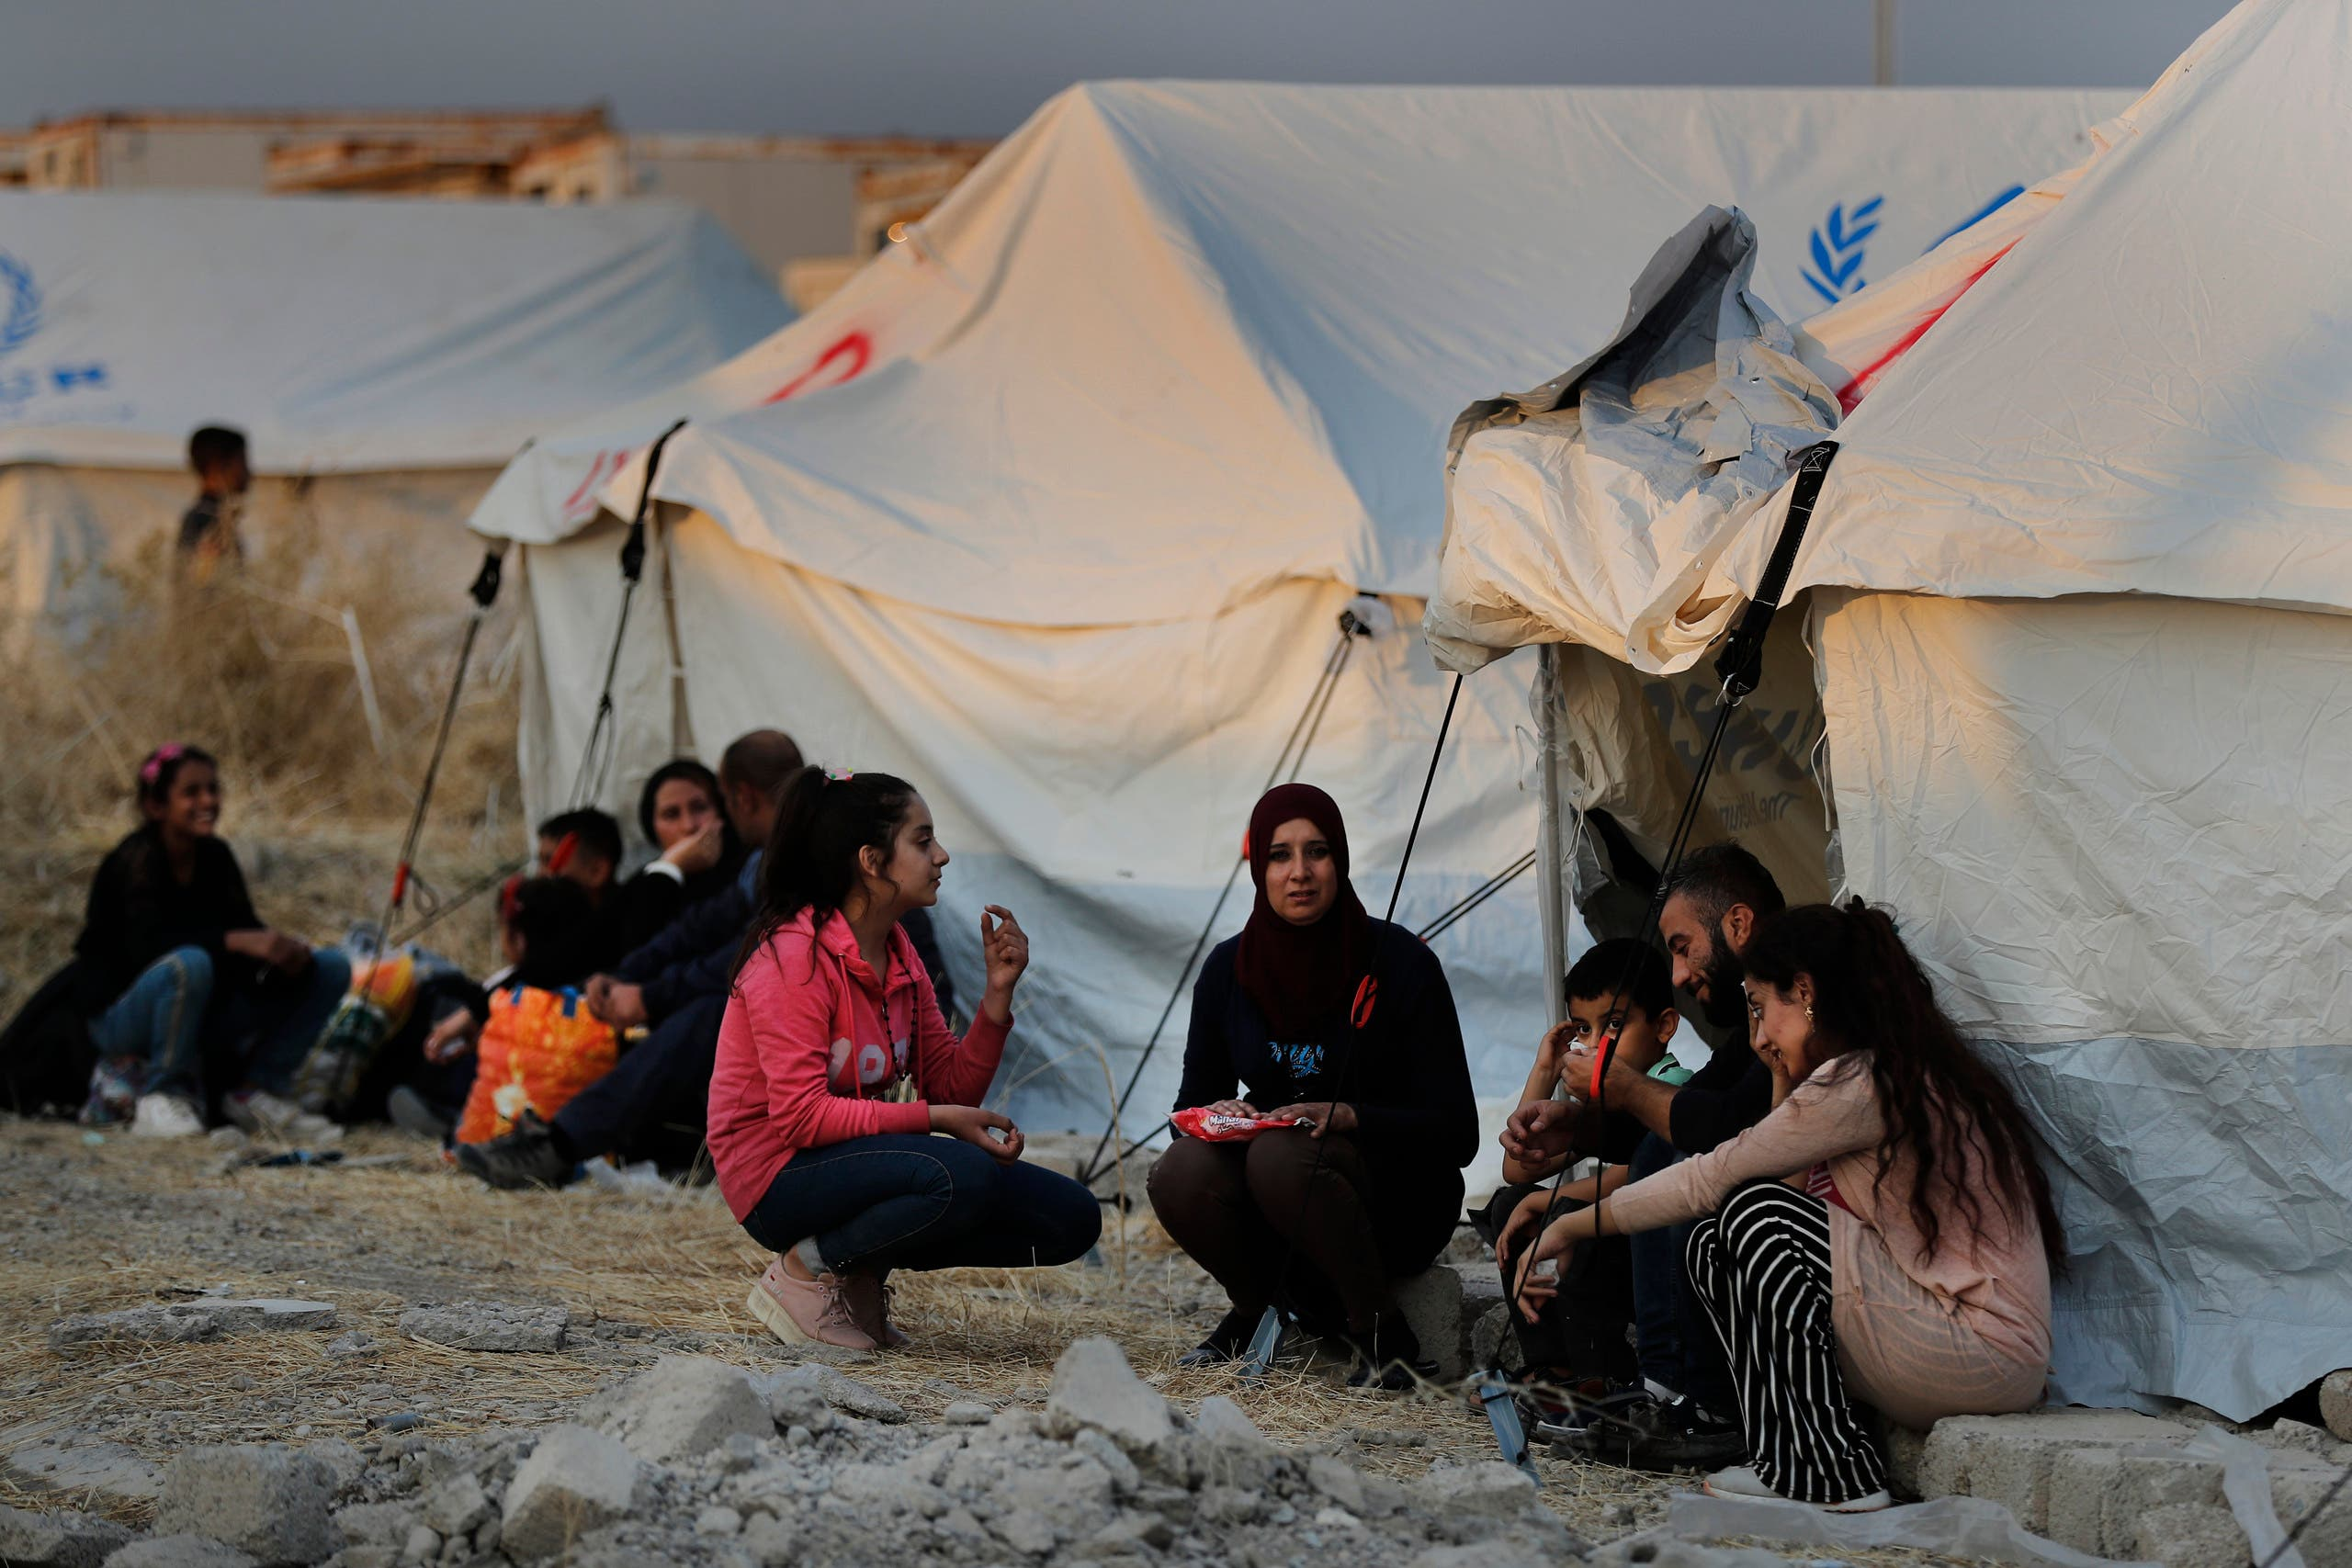 Syrians wait to receive tents and aid supplies at the Bardarash refugee camp, north of Mosul, Iraq on Oct. 17, 2019. (AP)